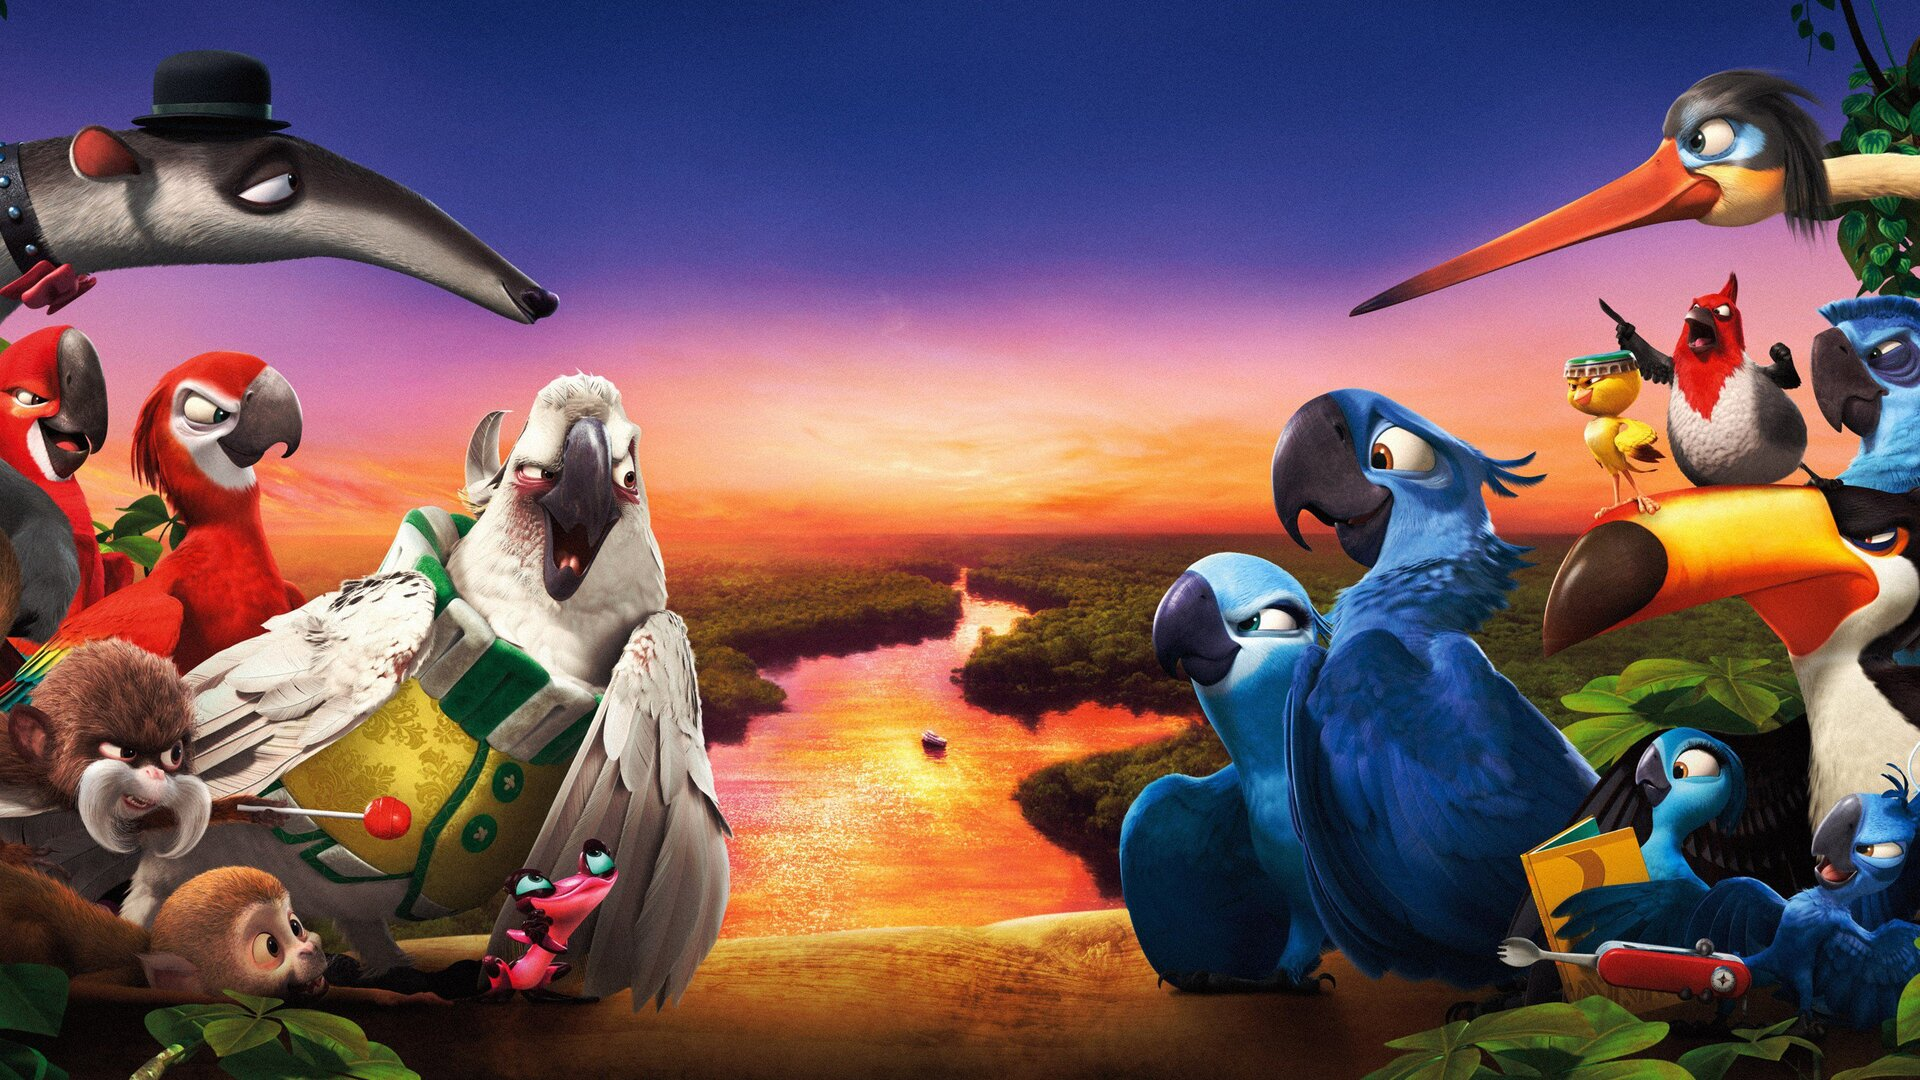 1920x1080 rio 2 movie wide laptop full hd 1080p hd 4k wallpapers